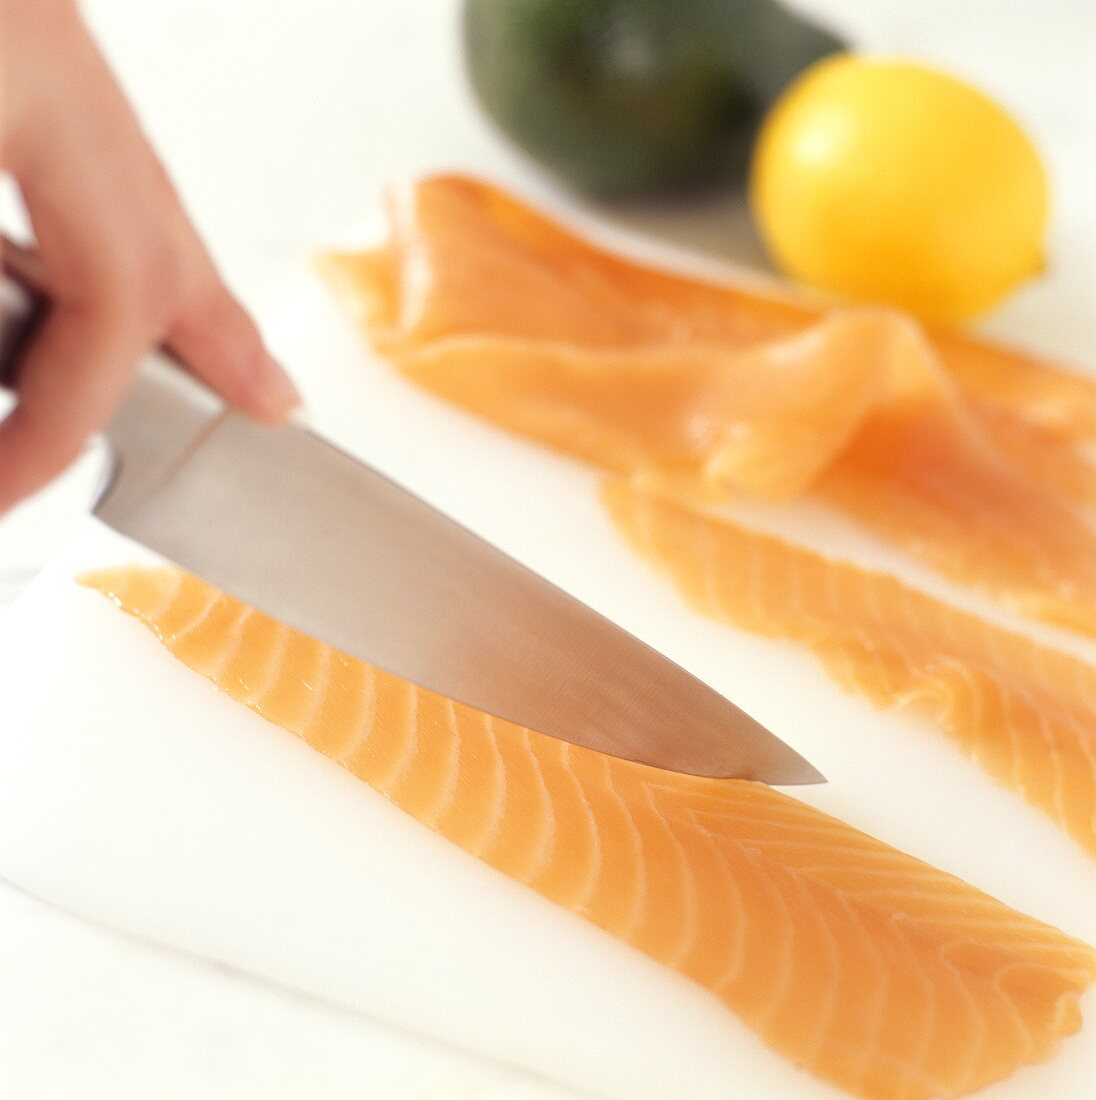 Salmon fillet being cut with a knife (for sushi)